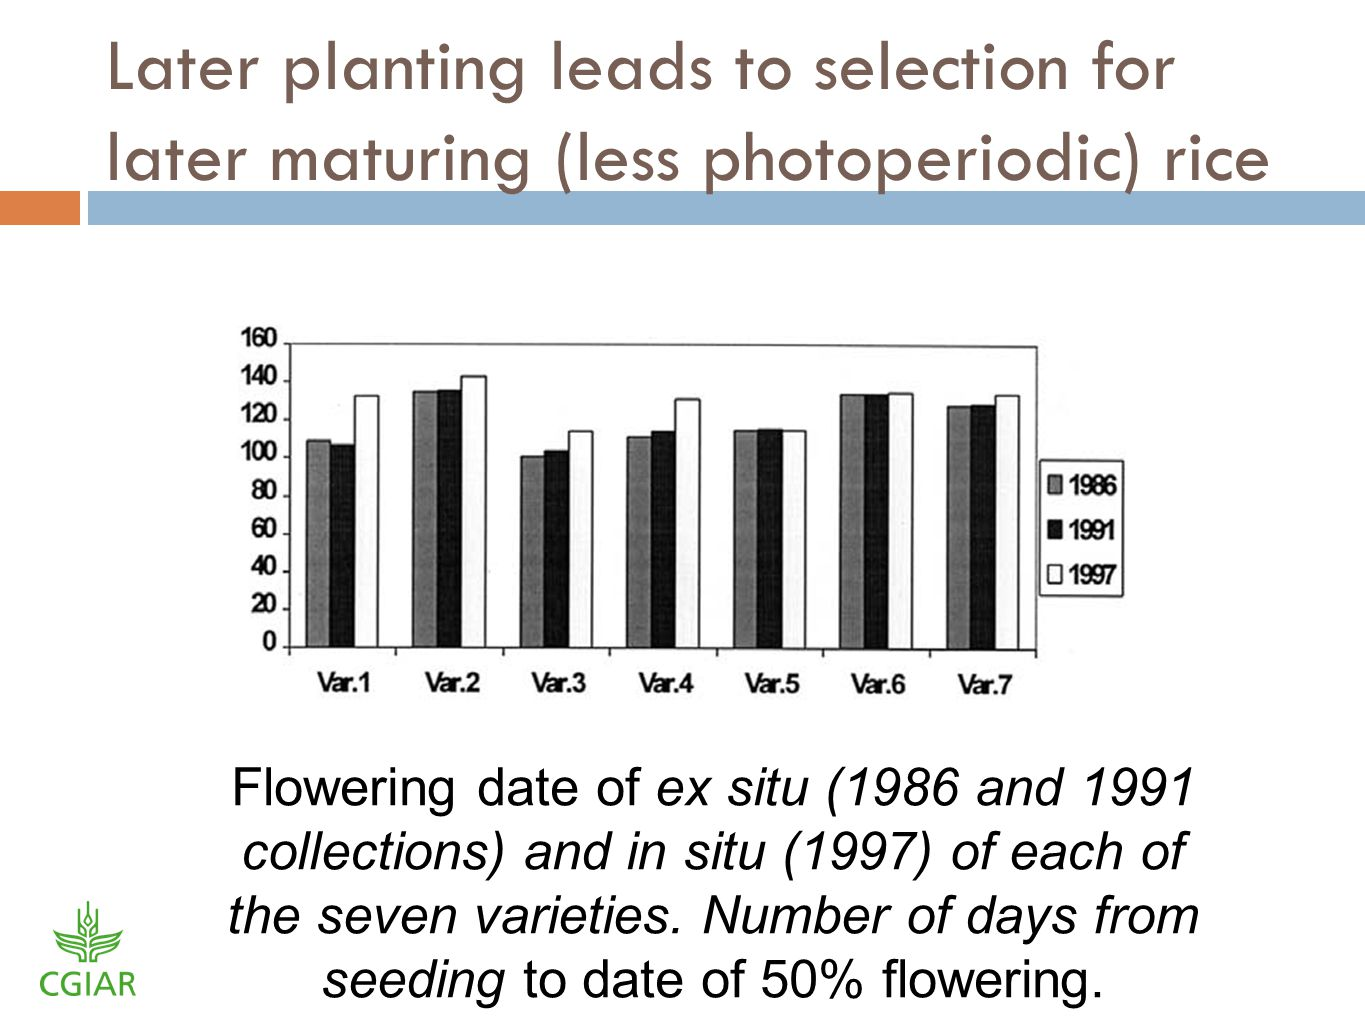 Later planting leads to selection for later maturing (less photoperiodic) rice Flowering date of ex situ (1986 and 1991 collections) and in situ (1997) of each of the seven varieties.